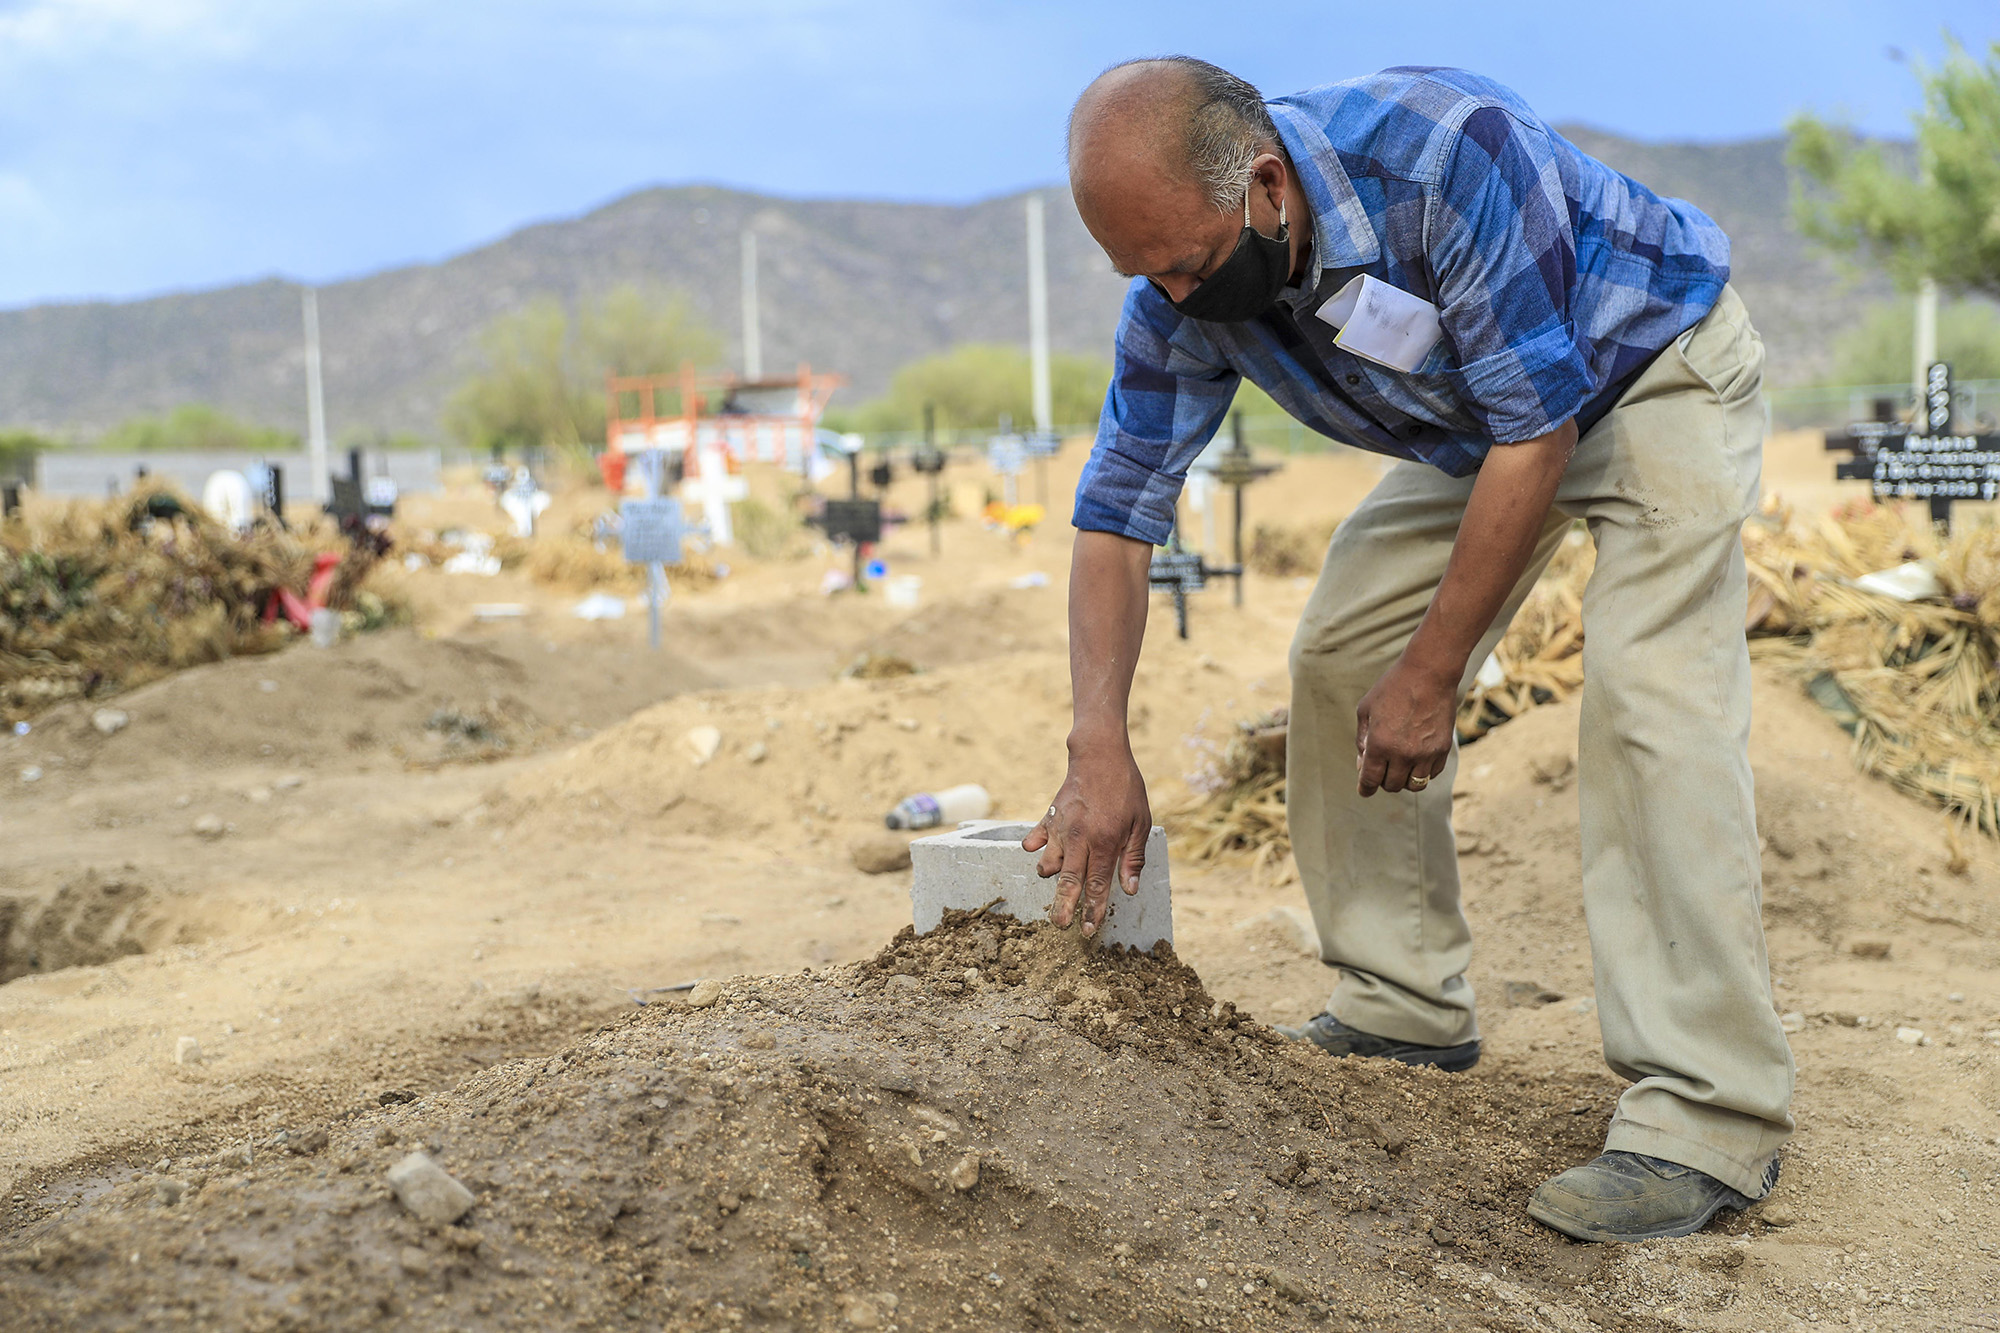 Juan Hernández waters the grave of his brother Mario who died of COVID-19 on July 16, in Hermosillo, Mexico.